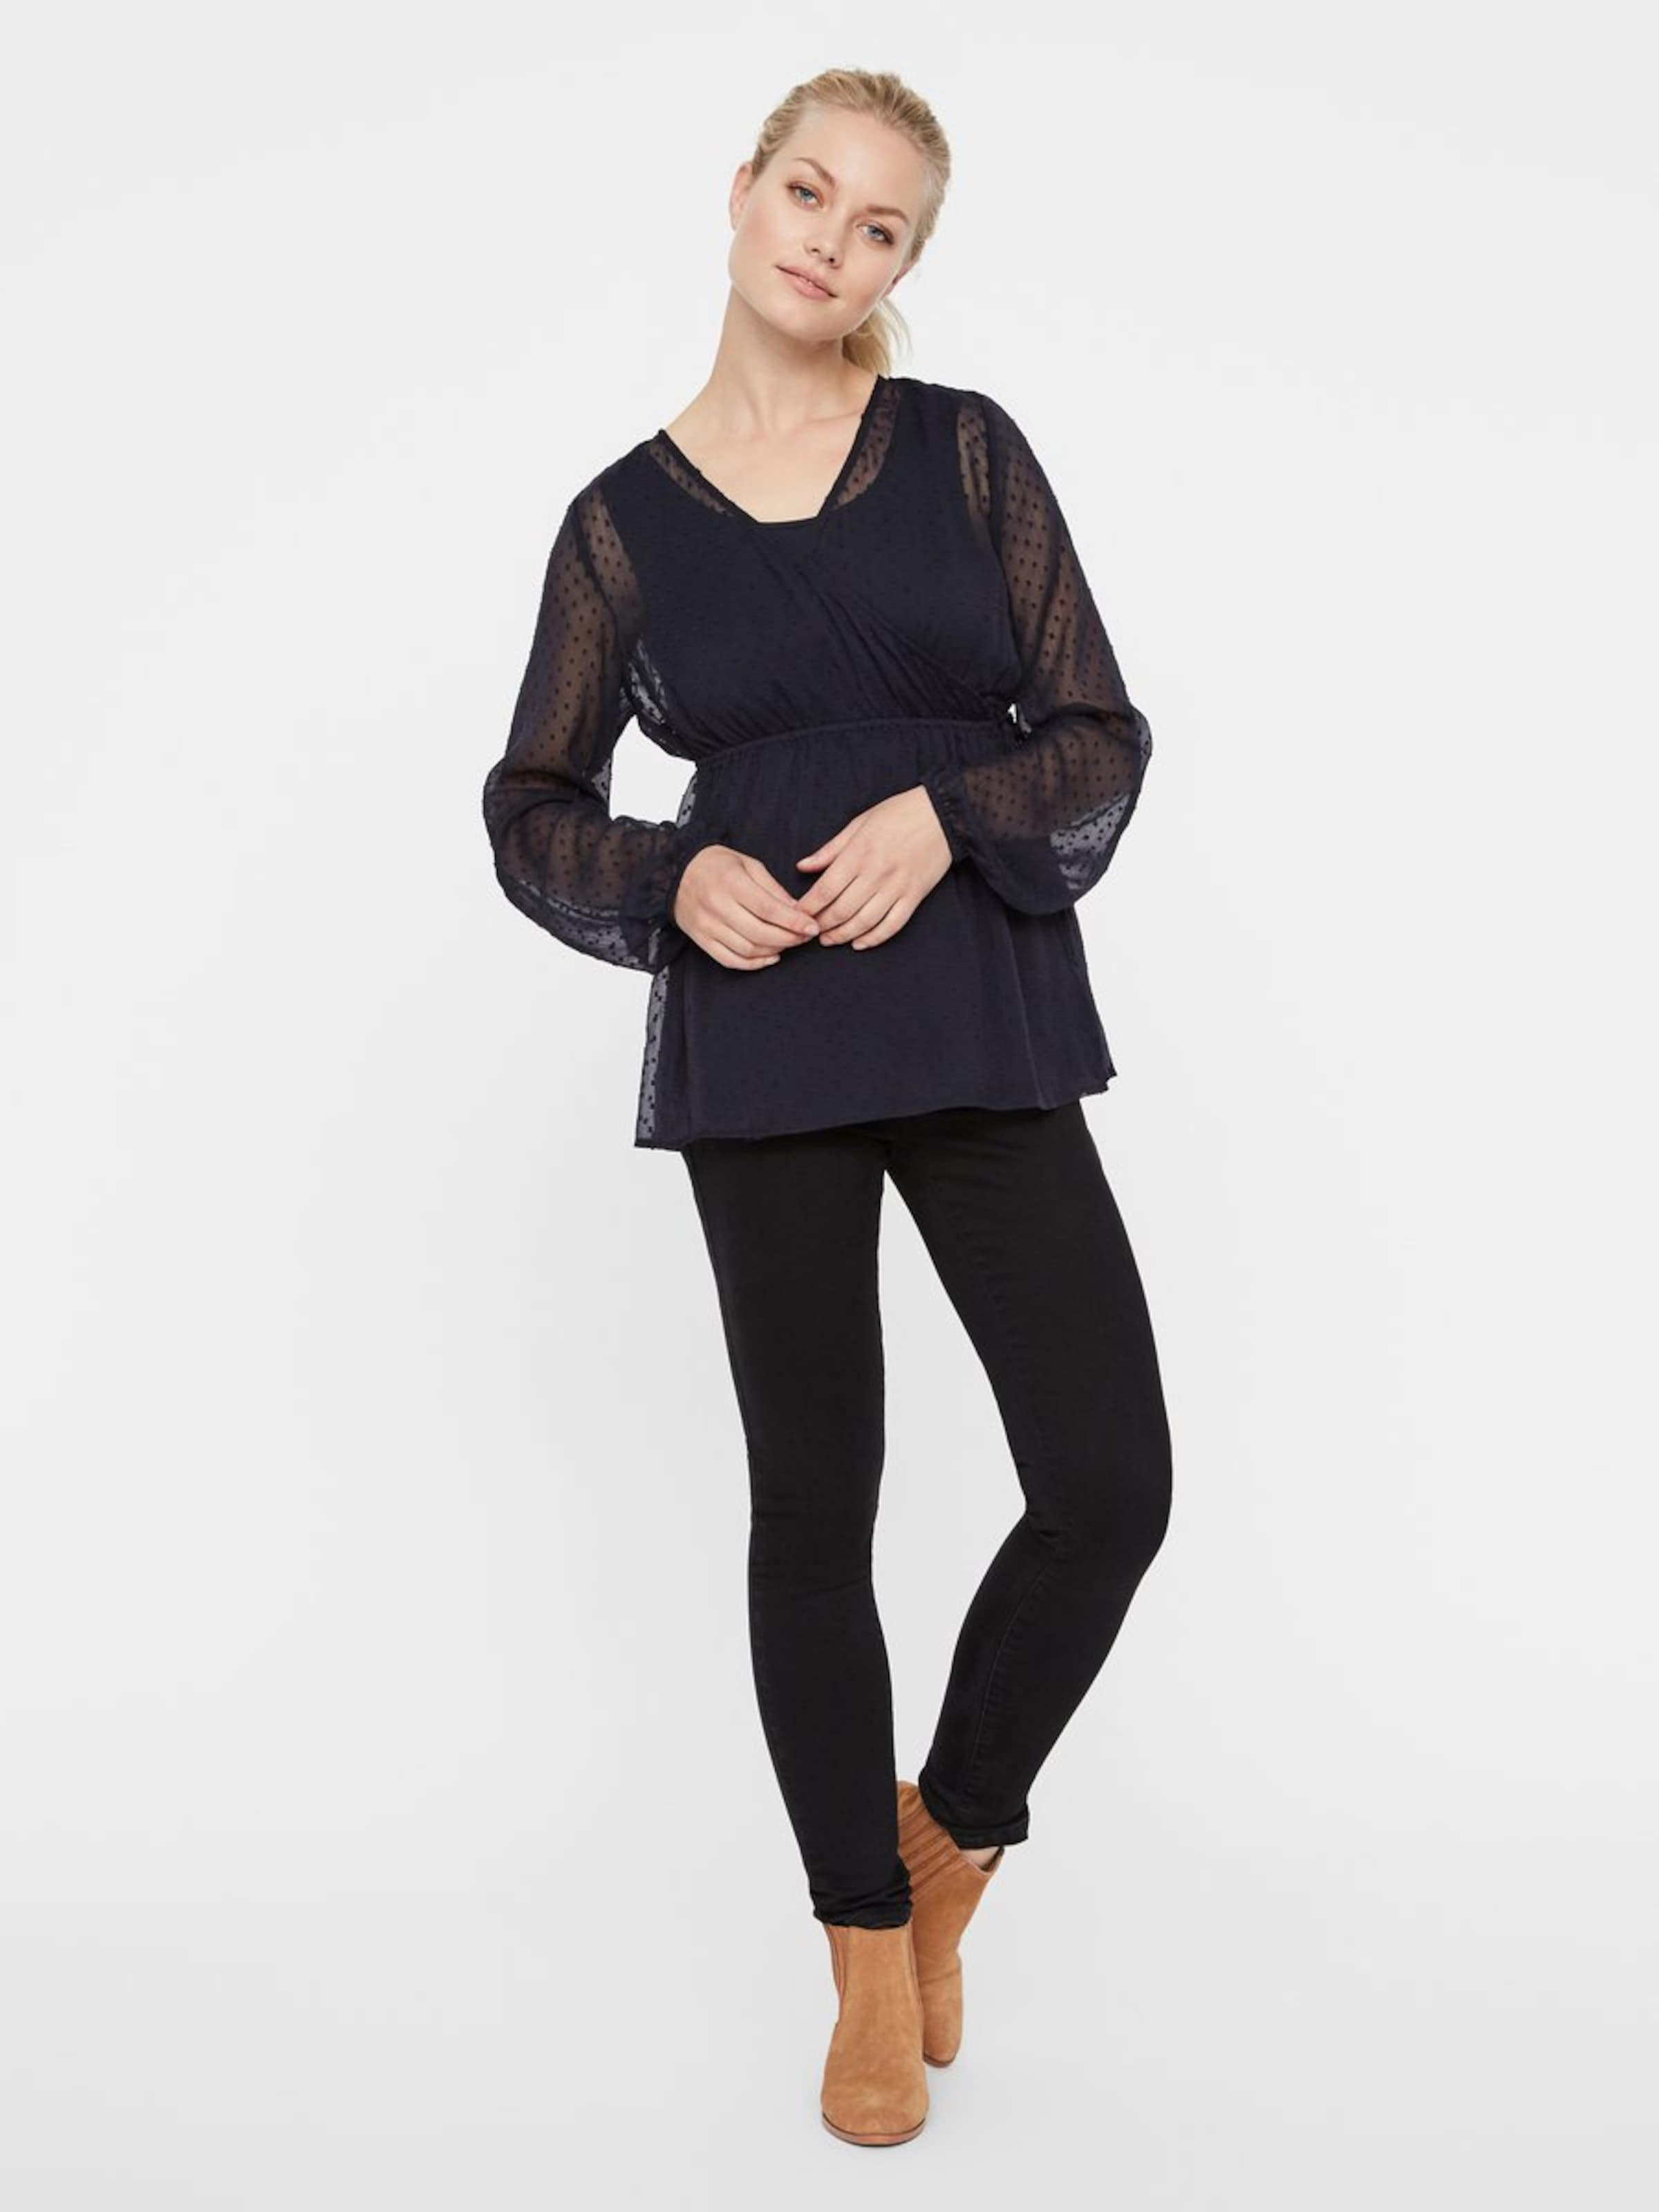 Mamalicious Navy Bluse In Navy In Navy Bluse Mamalicious Bluse Mamalicious Mamalicious In 2D9IYEHW